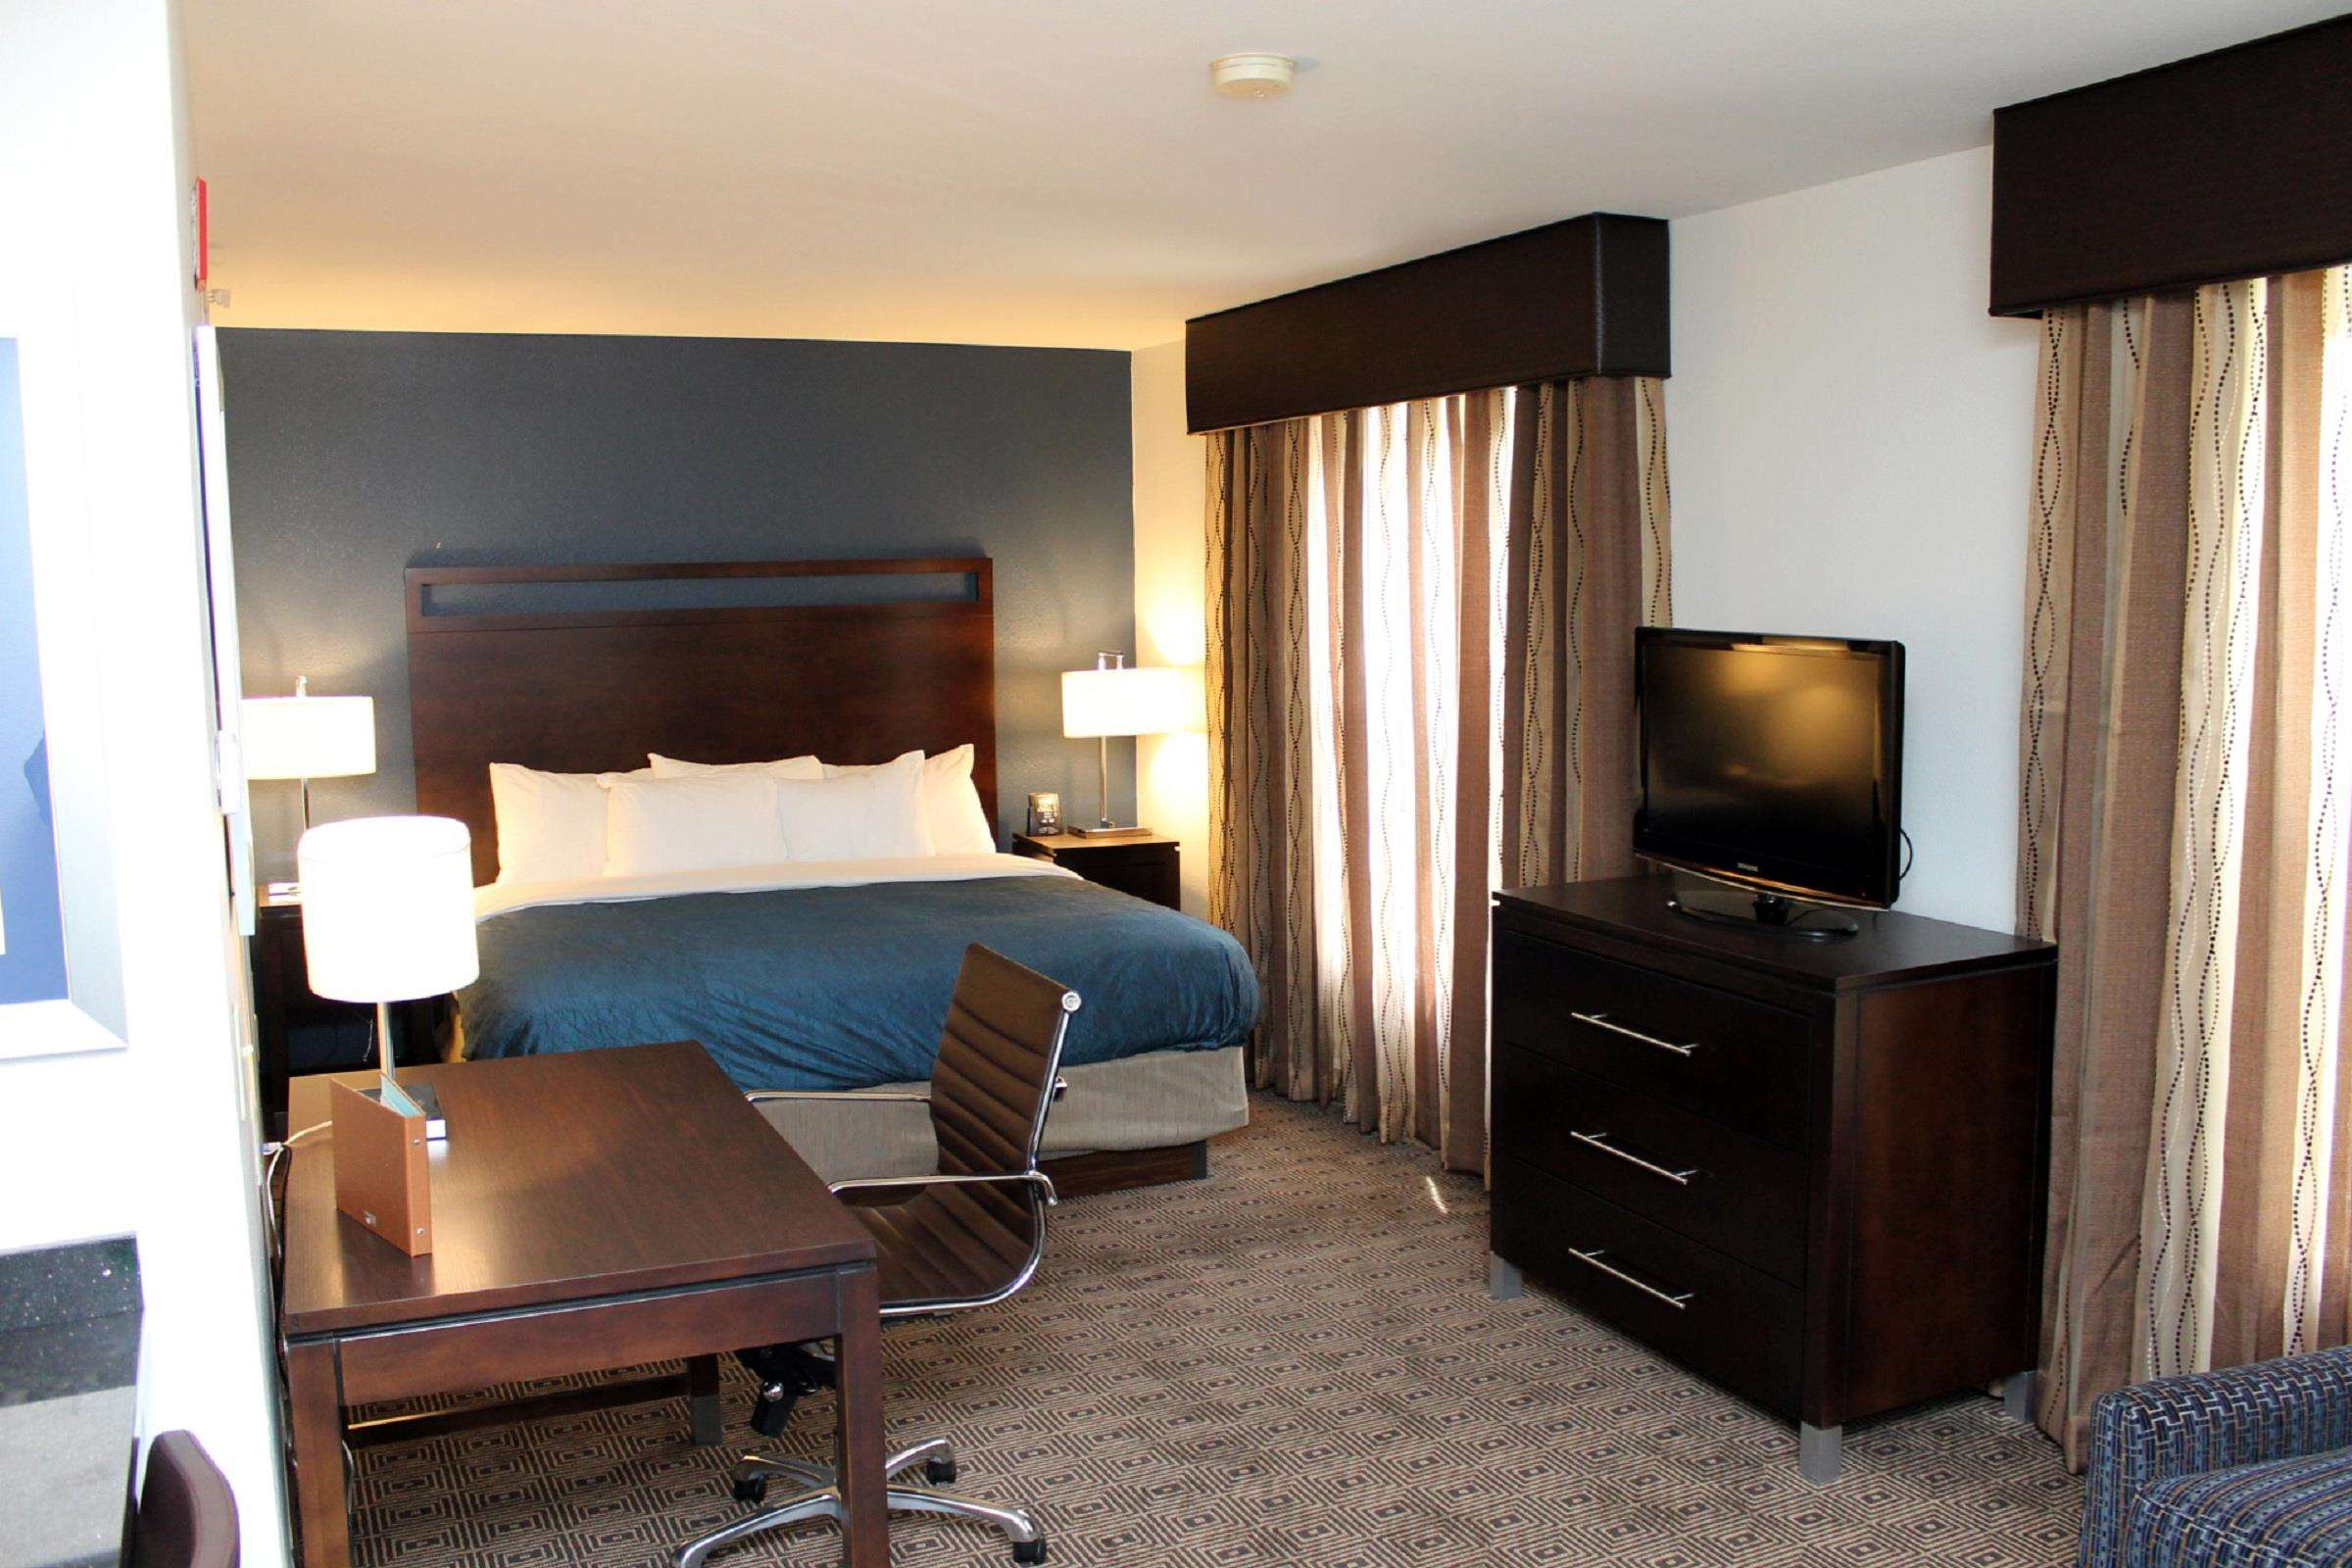 Homewood Suites by Hilton Manchester/Airport image 11